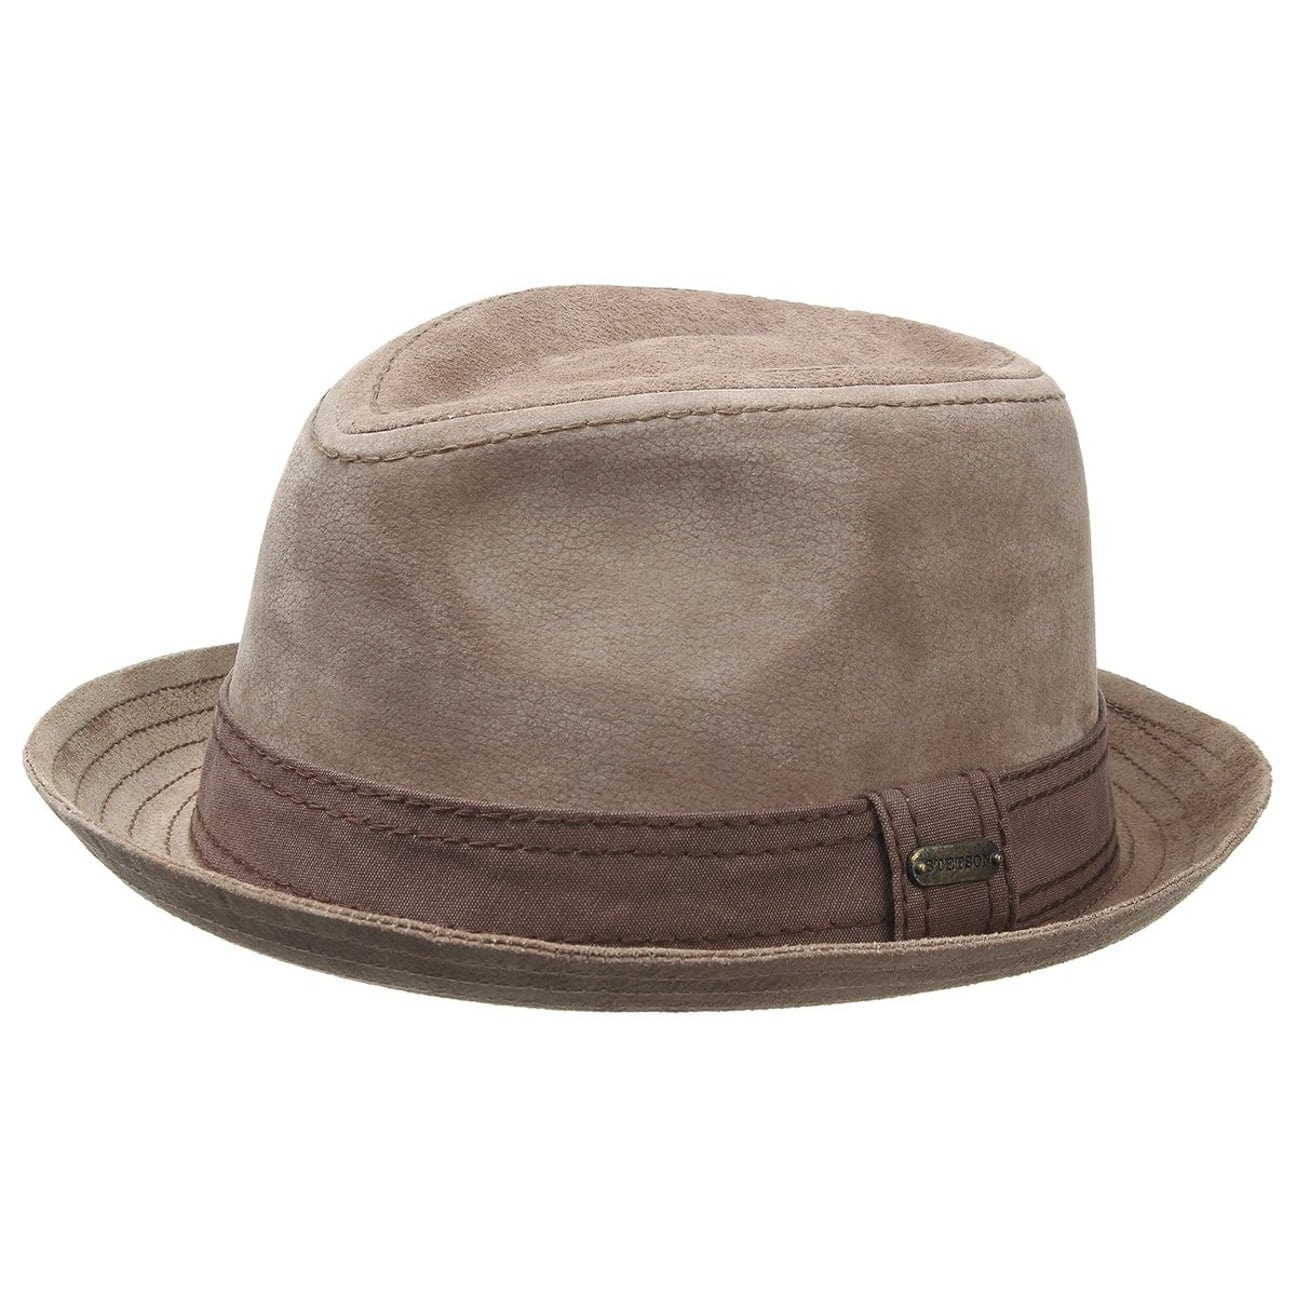 0b6ede20897 ... Radcliff Leather Player by Stetson - beige 1 ...